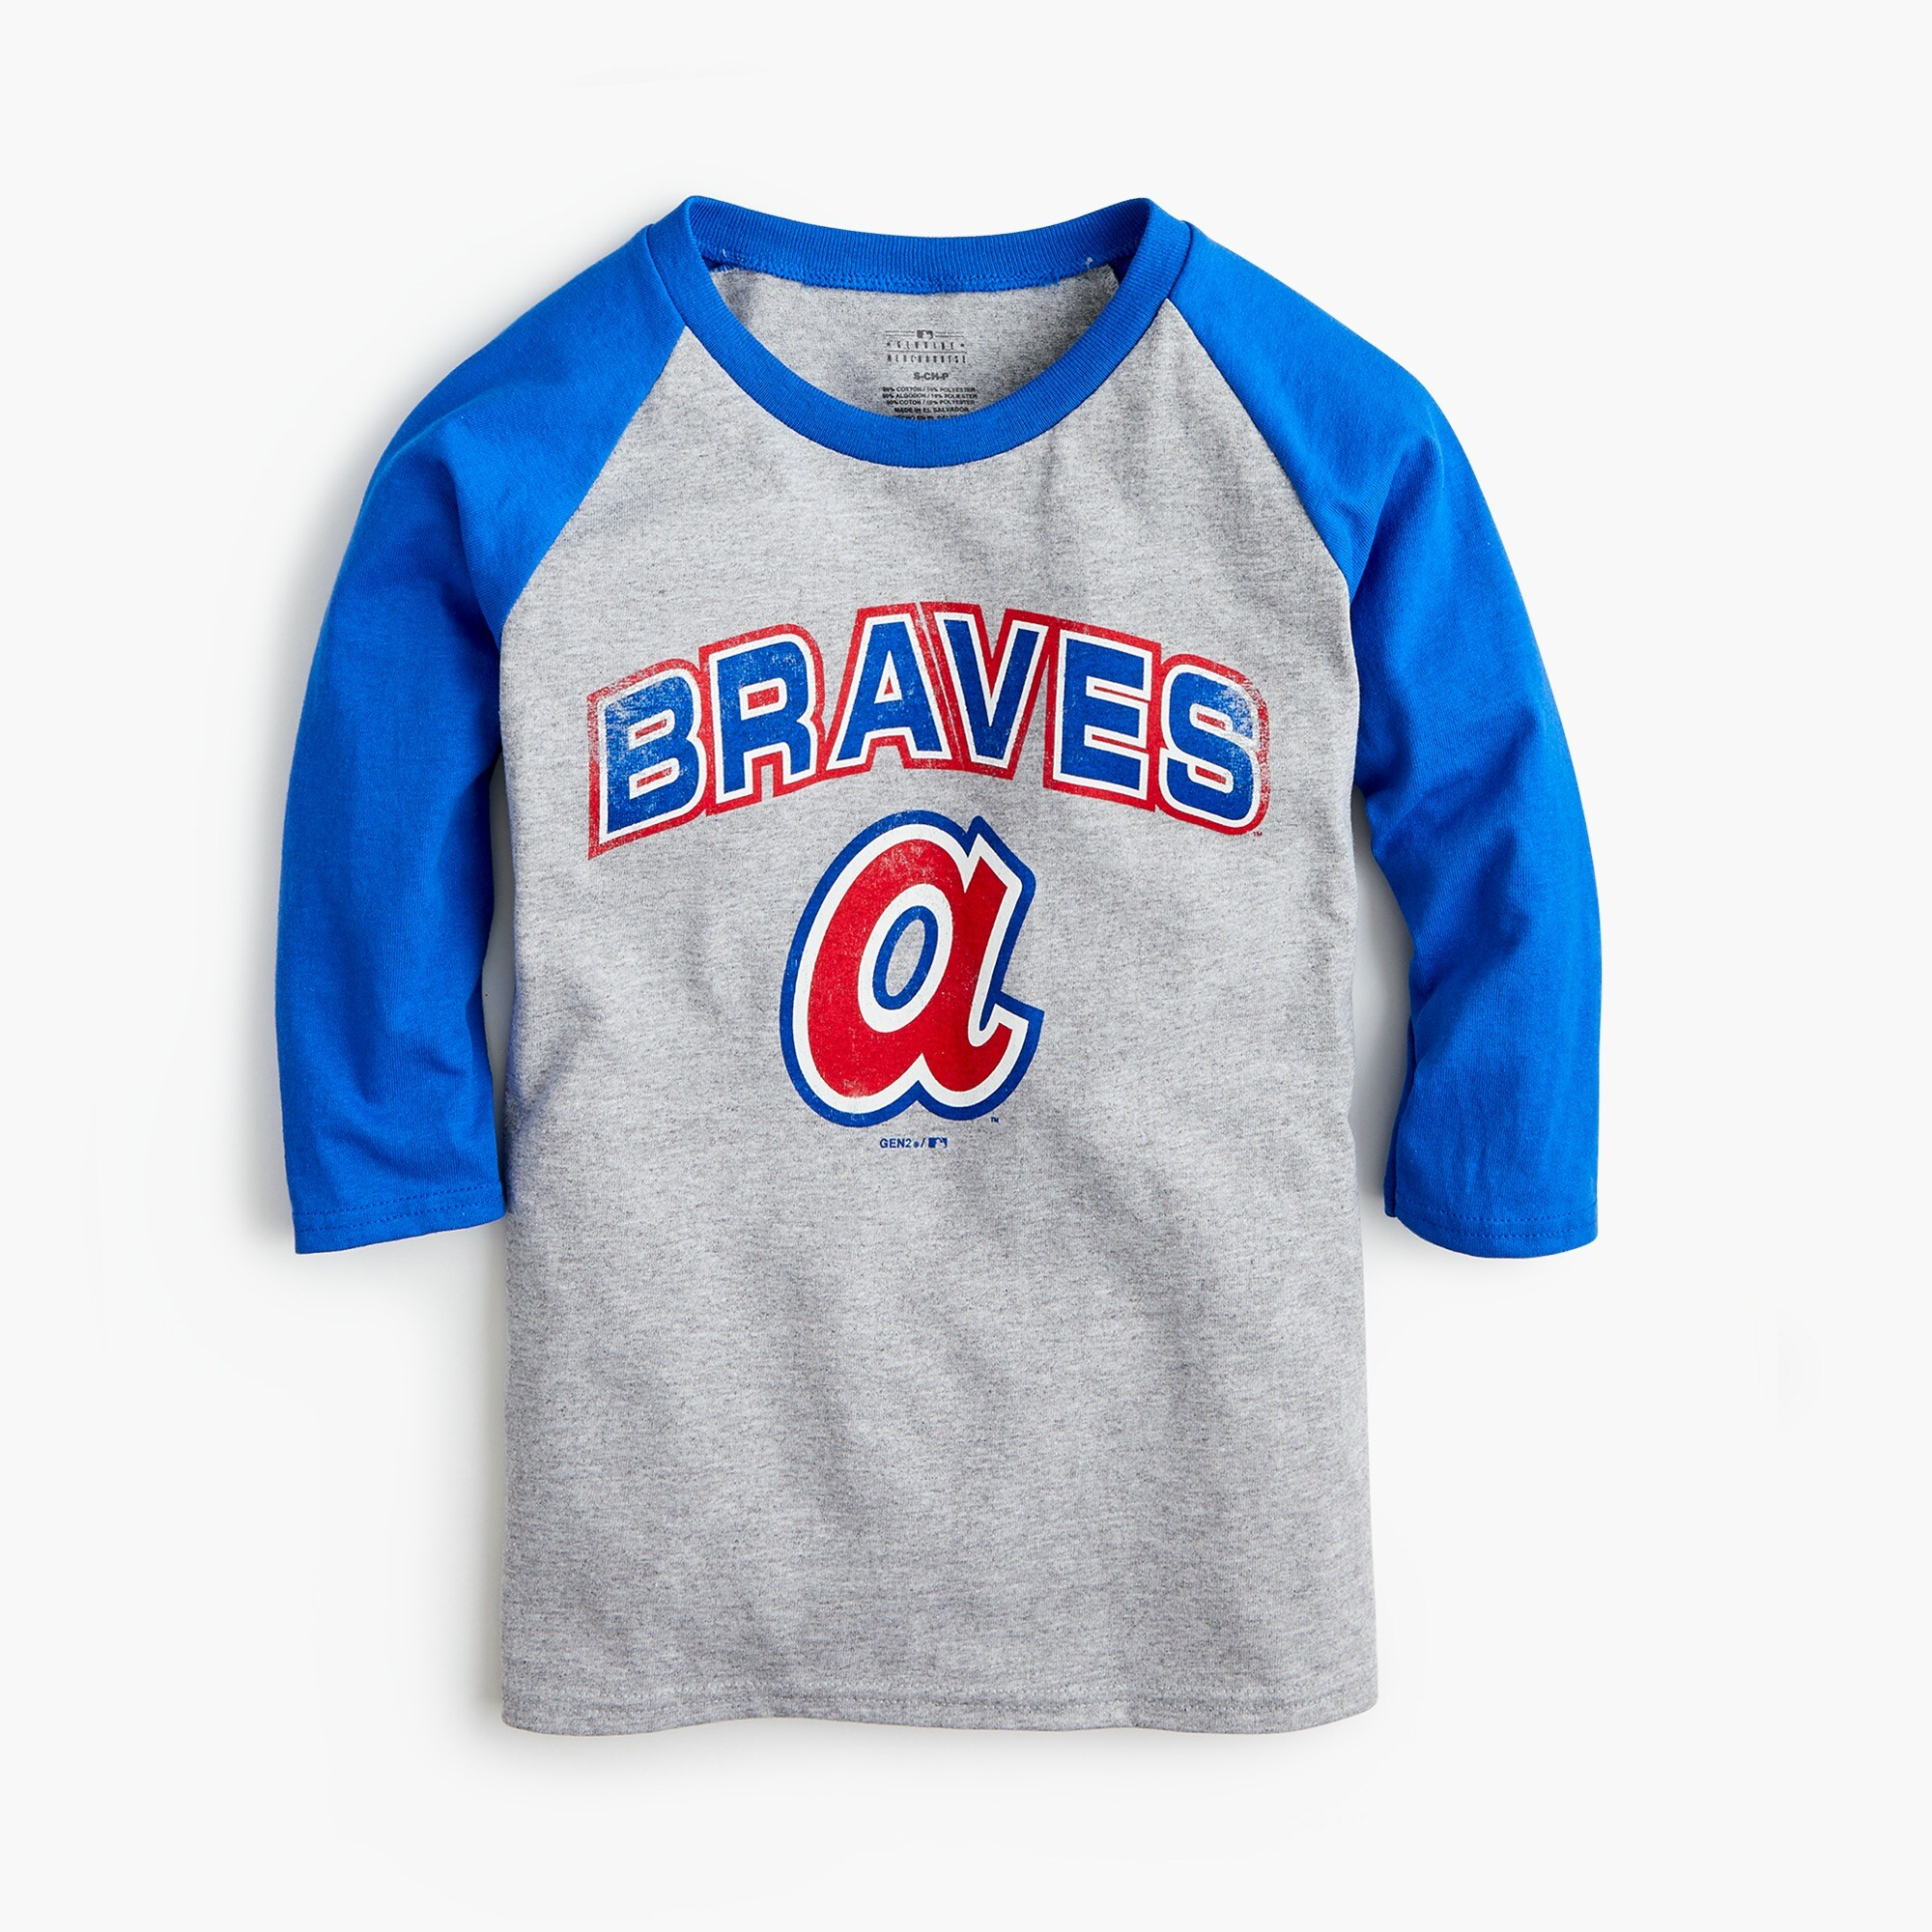 Kids' Atlanta Braves baseball T-shirt boy new arrivals c